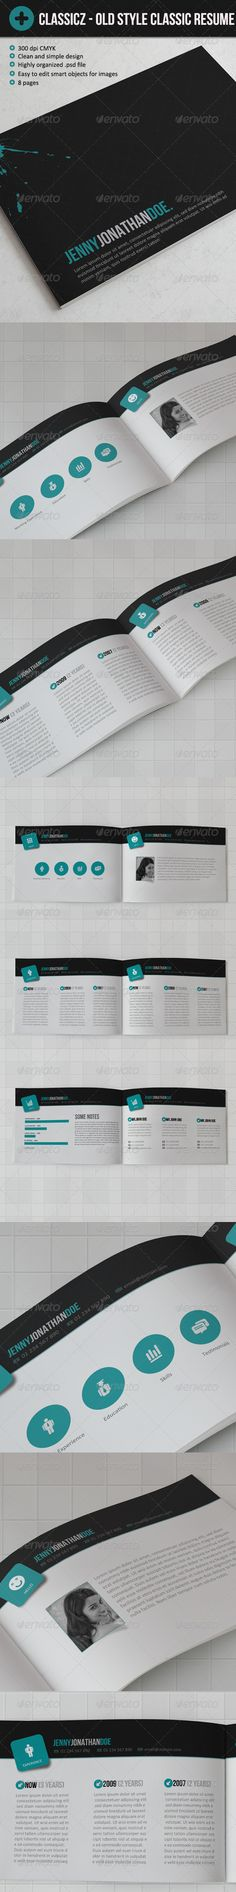 Simplica - Ultra Simple Resume Book Simple resume, Brochures and - resume book